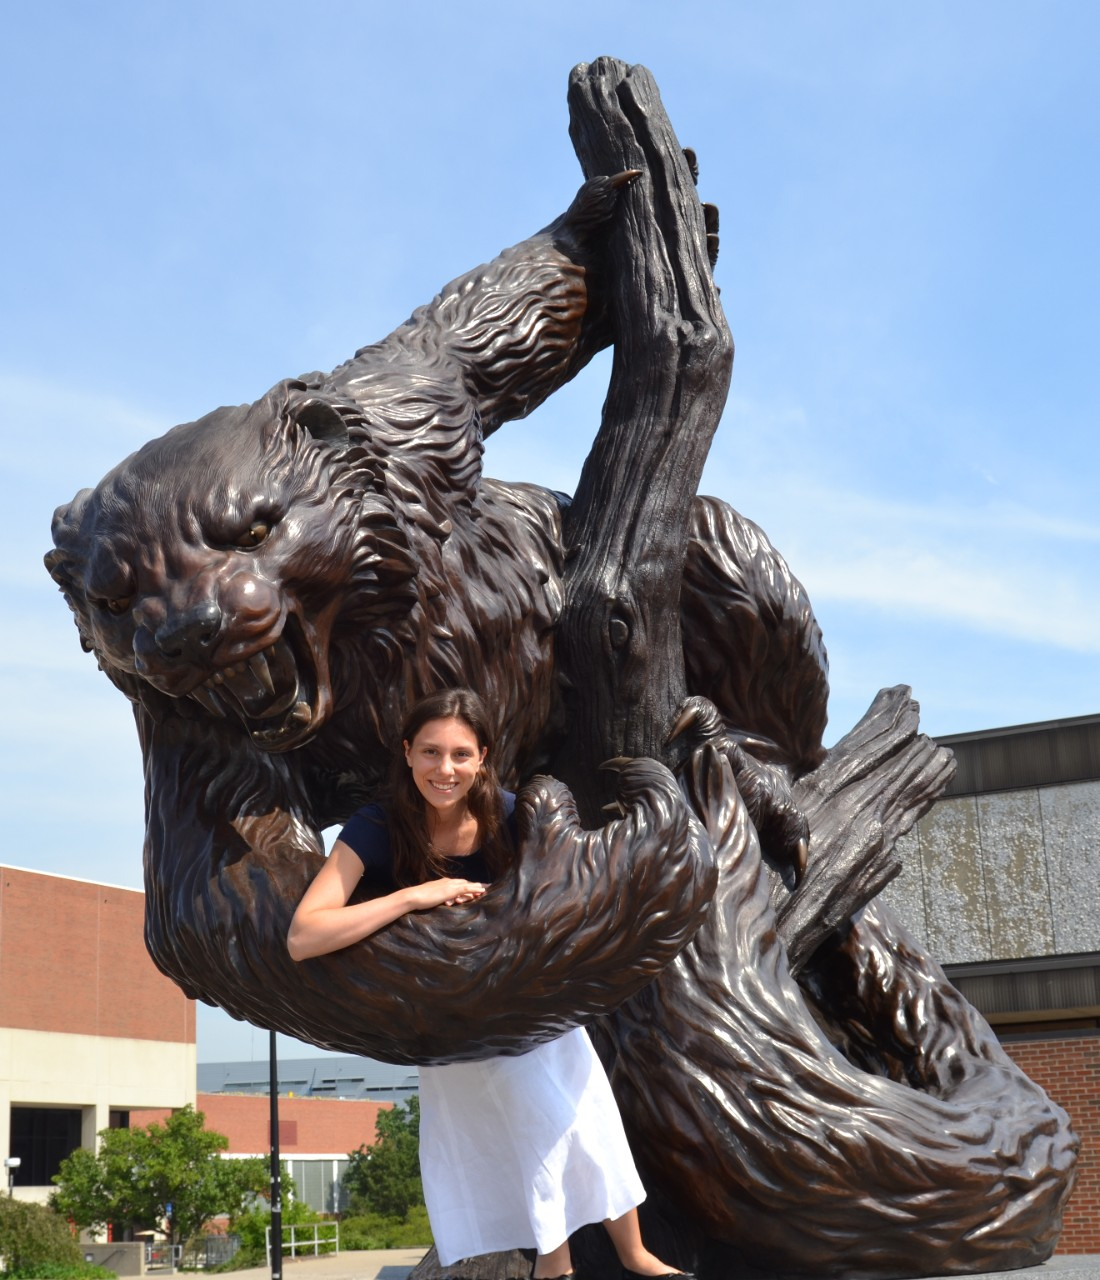 A young woman stands leaning on a statue of the UC Bearcat mascot